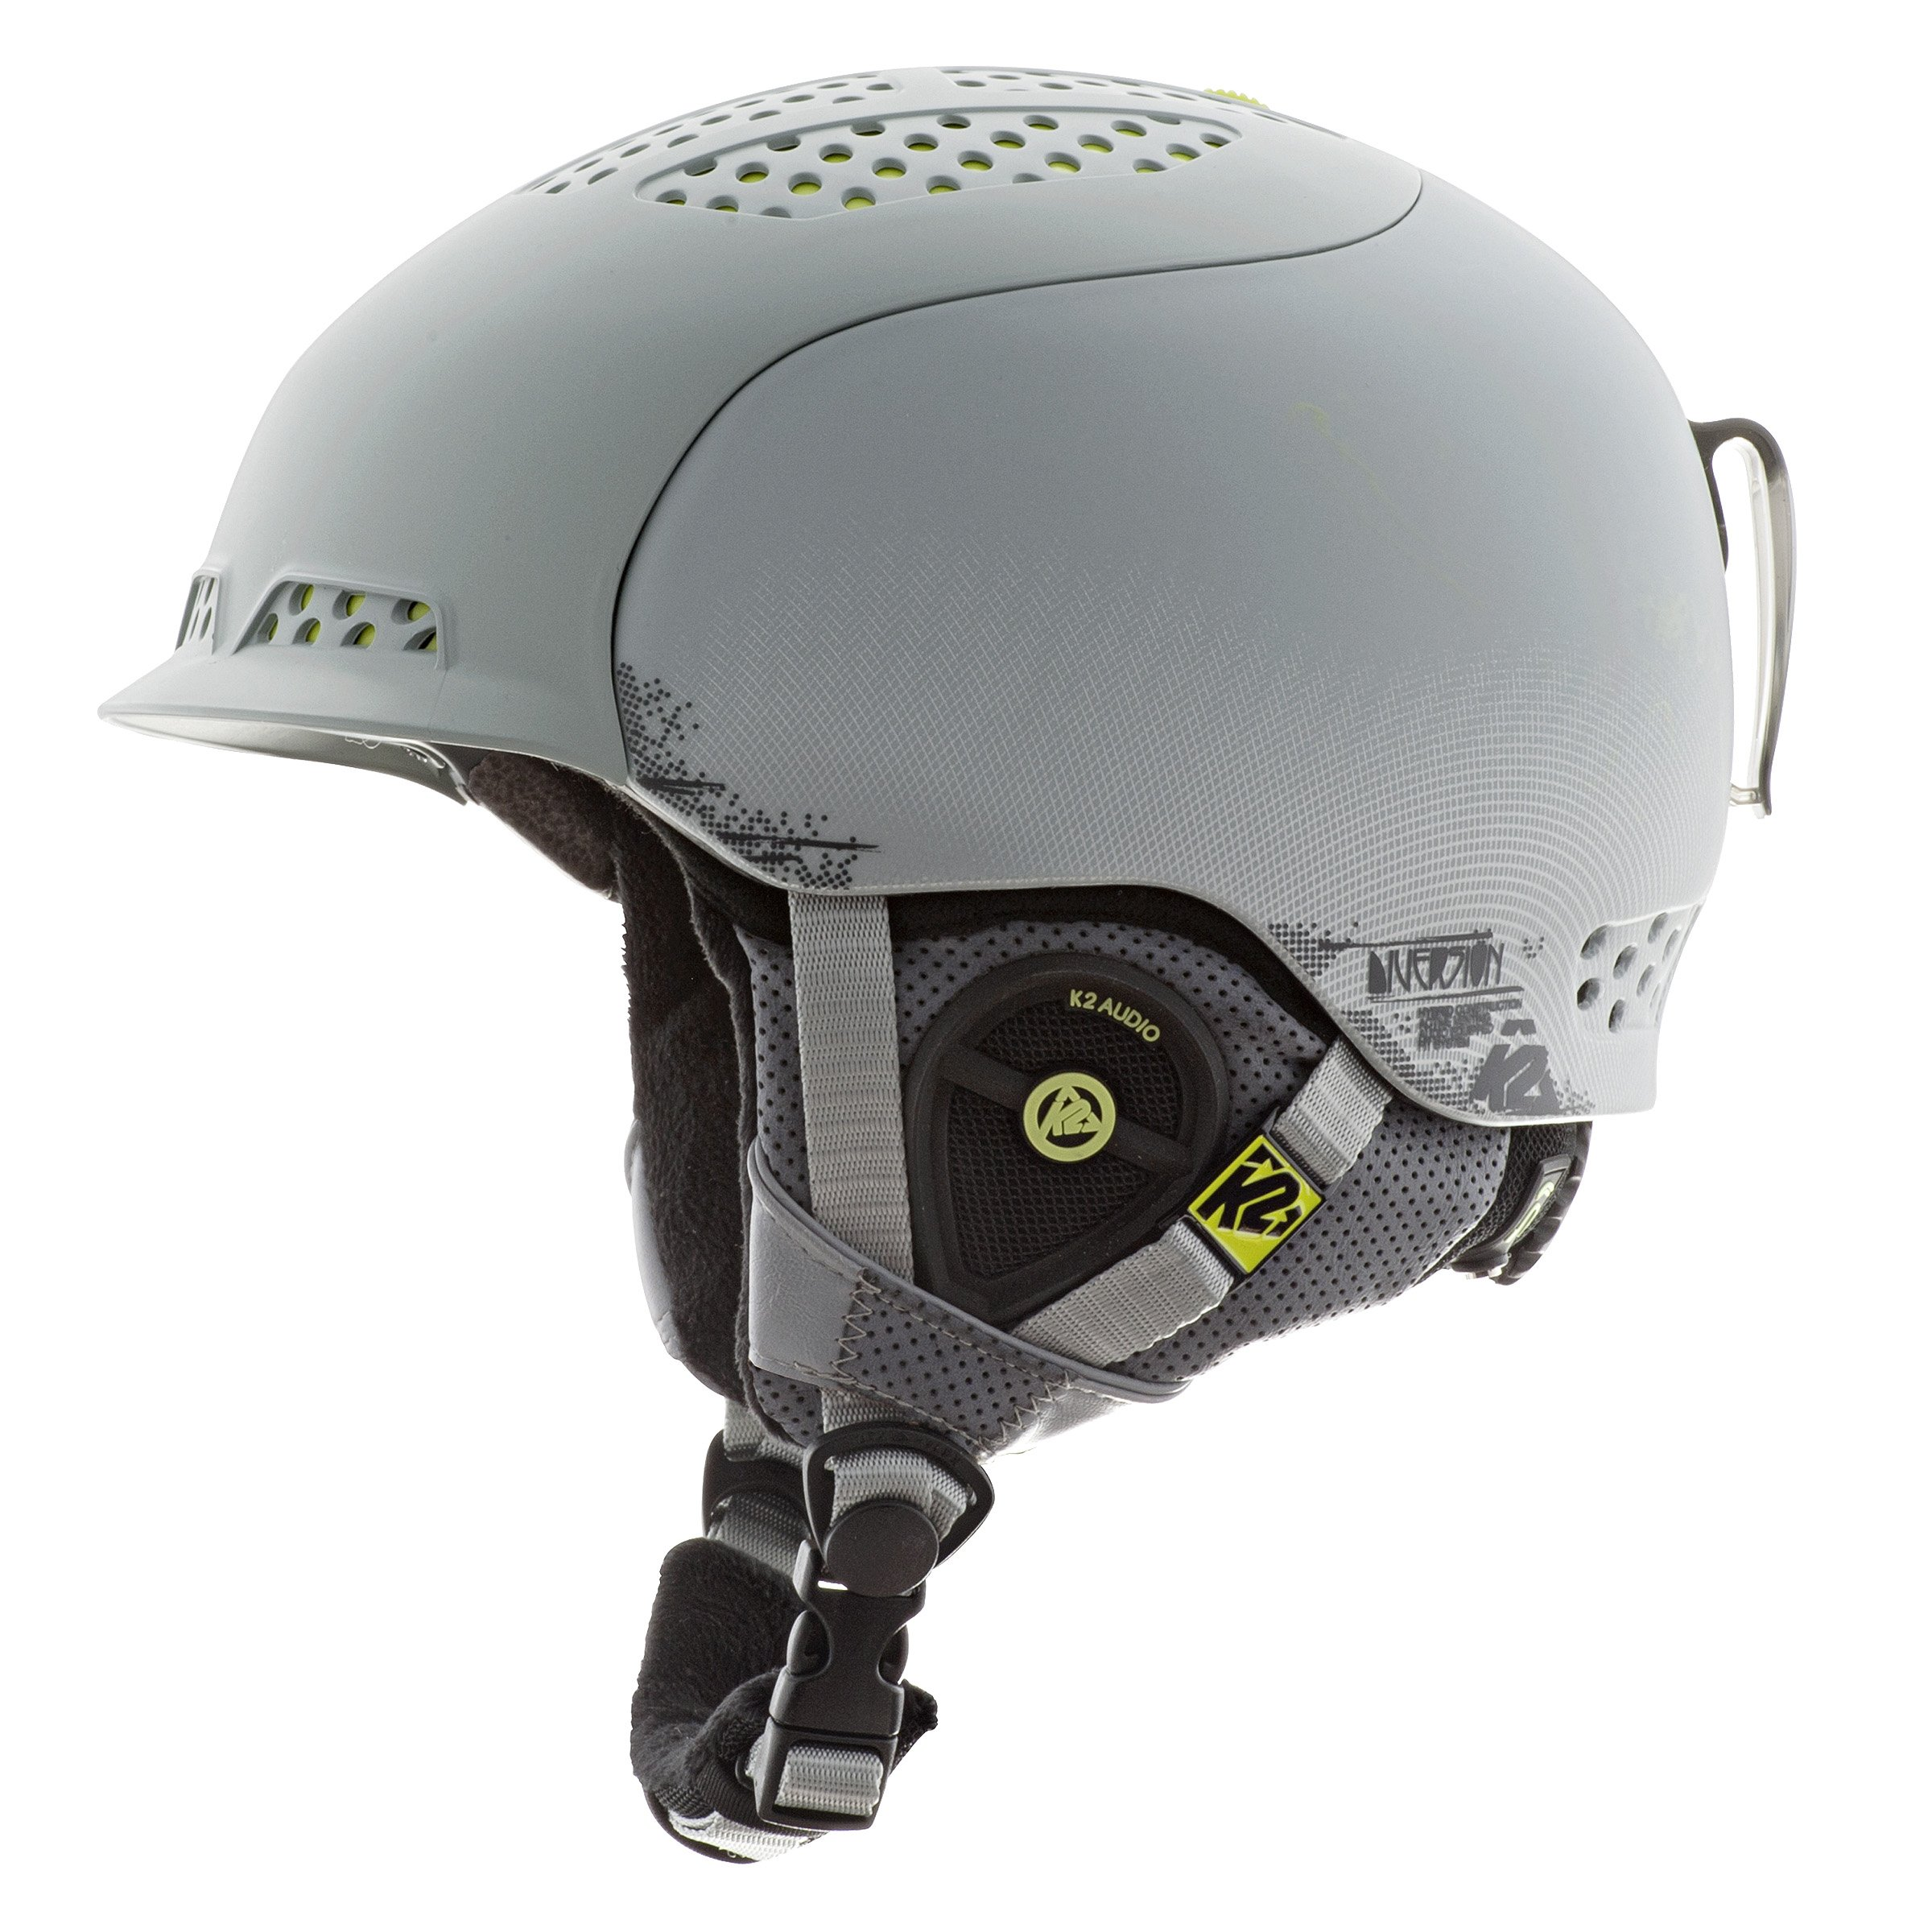 K2 Diversion Ski Helmet, Gray, Small